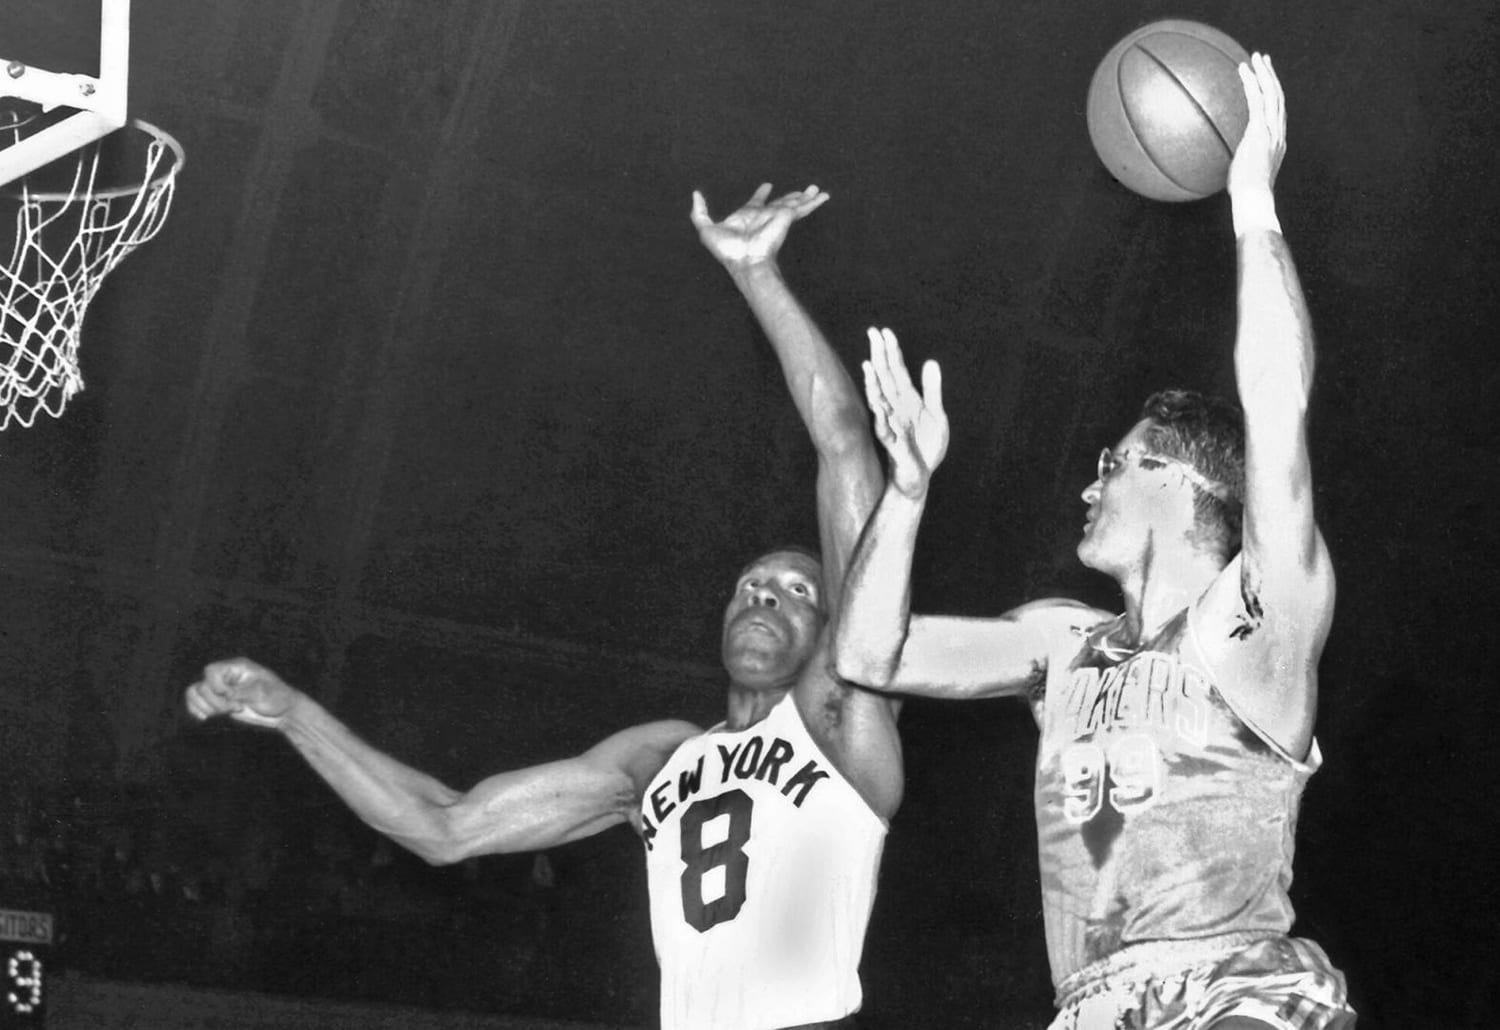 MINNEAPOLIS, MN - 1955: George Mikan #99 of the Minneapolis Lakers shoots during a game played in 1955 in Minneapolis, Minnesota. NOTE TO USER: User expressly acknowledges and agrees that, by downloading and or using this photograph, User is consenting to the terms and conditions of the Getty Images License Agreement. Mandatory Copyright Notice: Copyright 1955 NBAE (Photo by NBA Photos/NBAE via Getty Images)